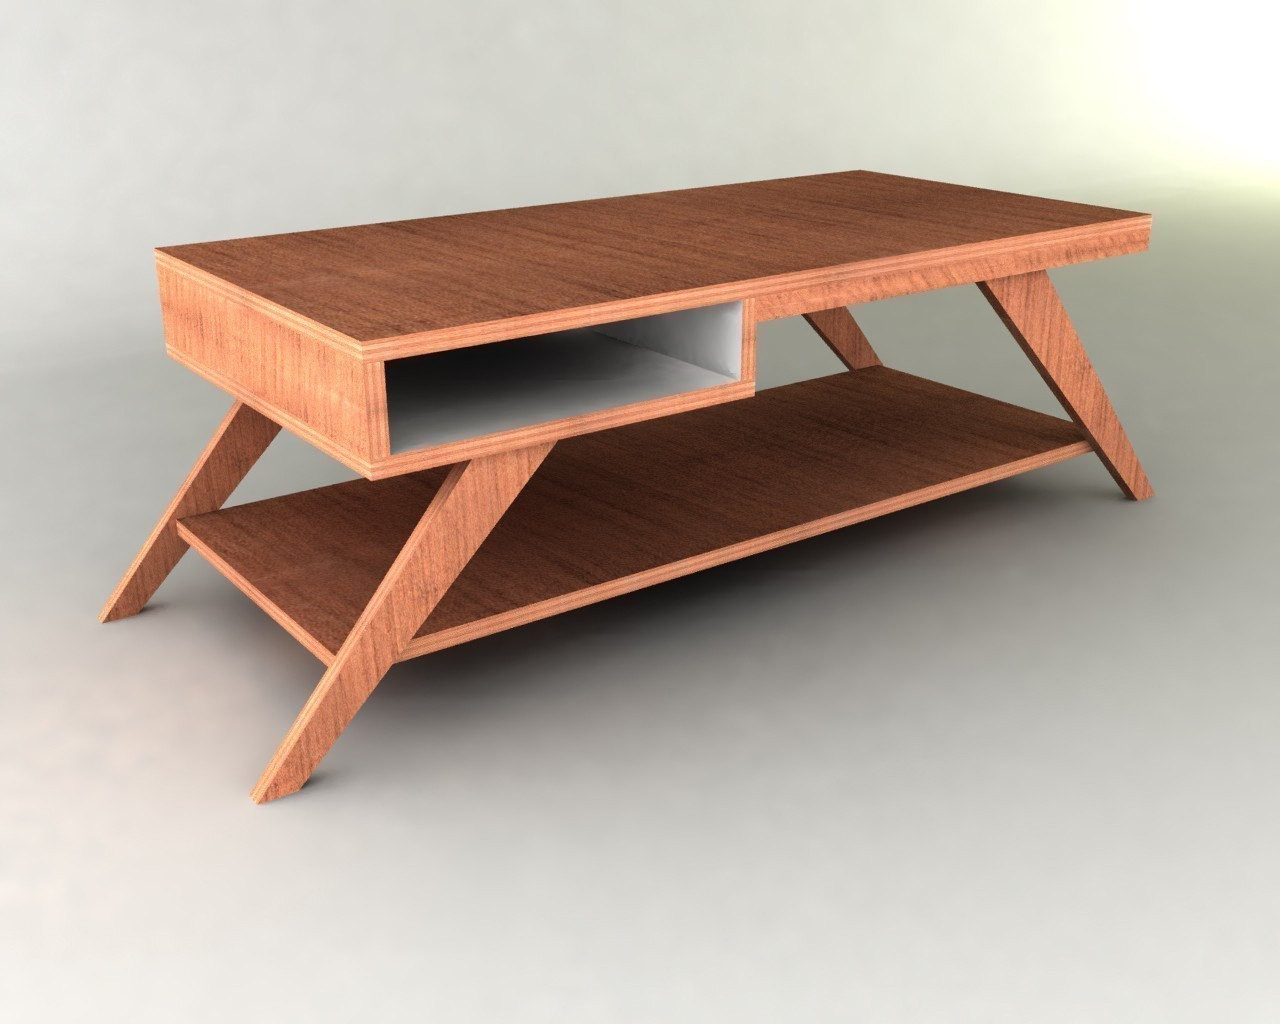 Best ideas about Coffee Table Plans . Save or Pin Retro Modern Eames style Coffee Table Furniture Plan Now.